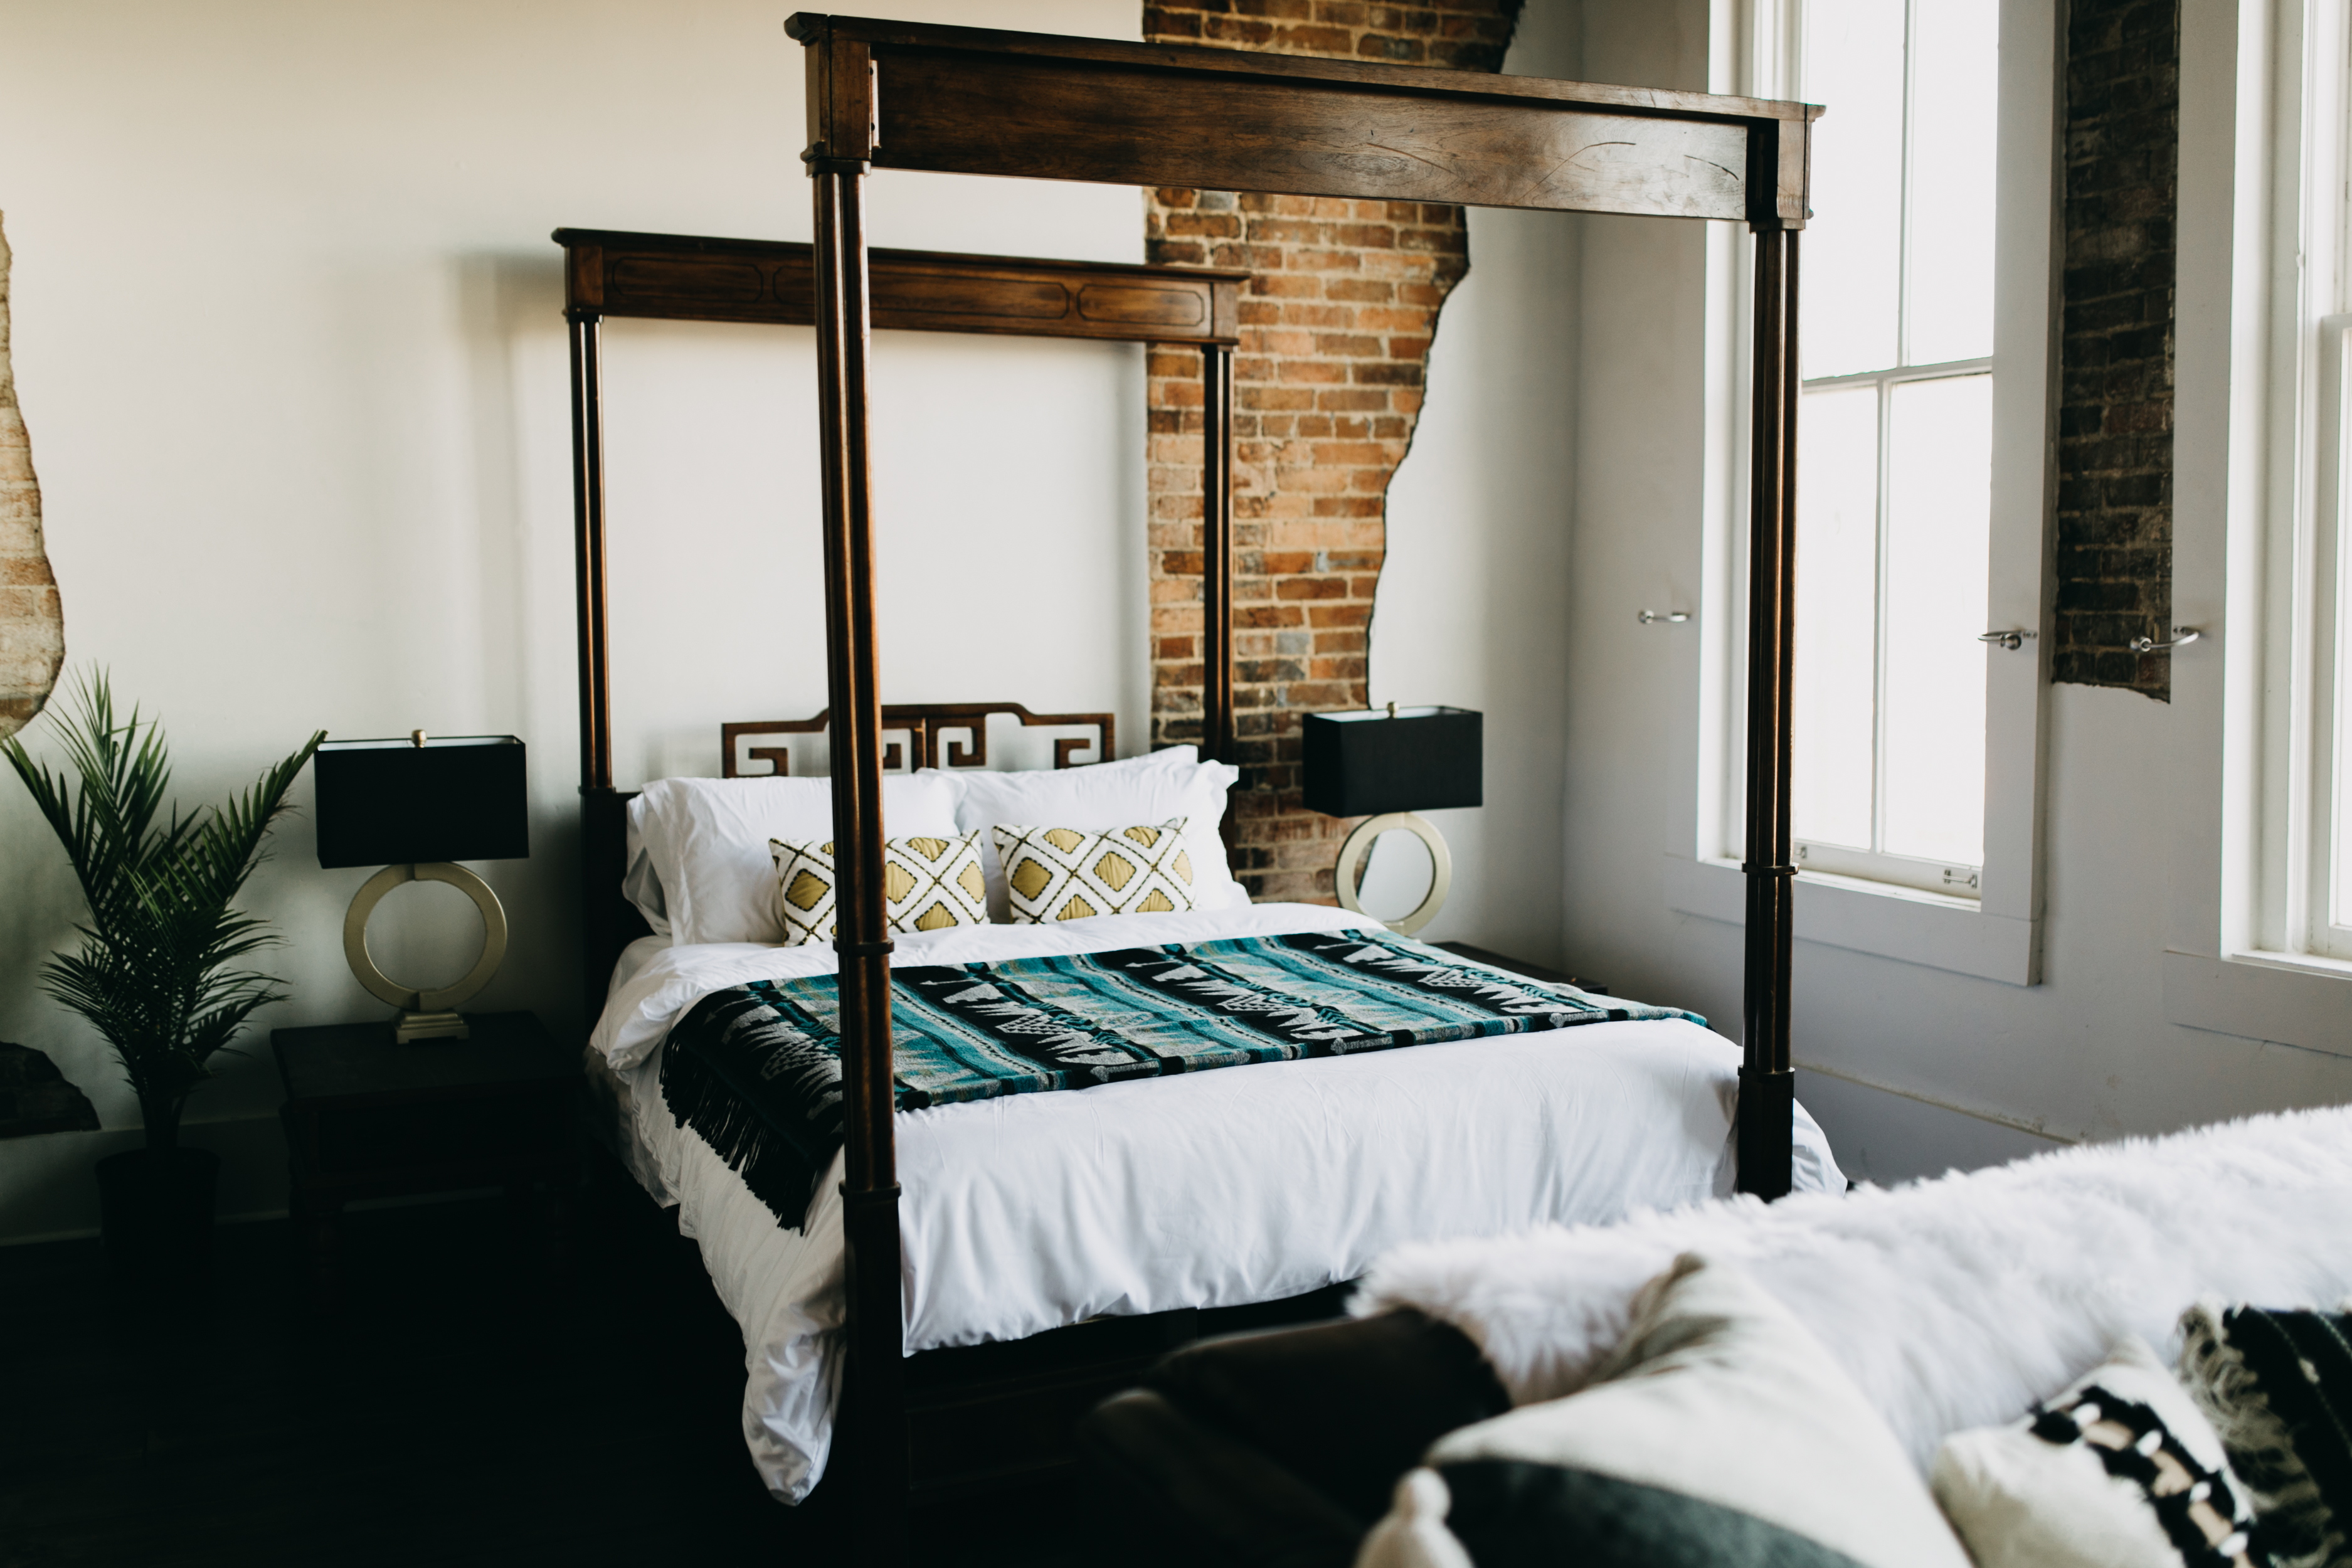 Springfield mo airbnb, Queen size wooden bed frame, teal and black aztec blanket